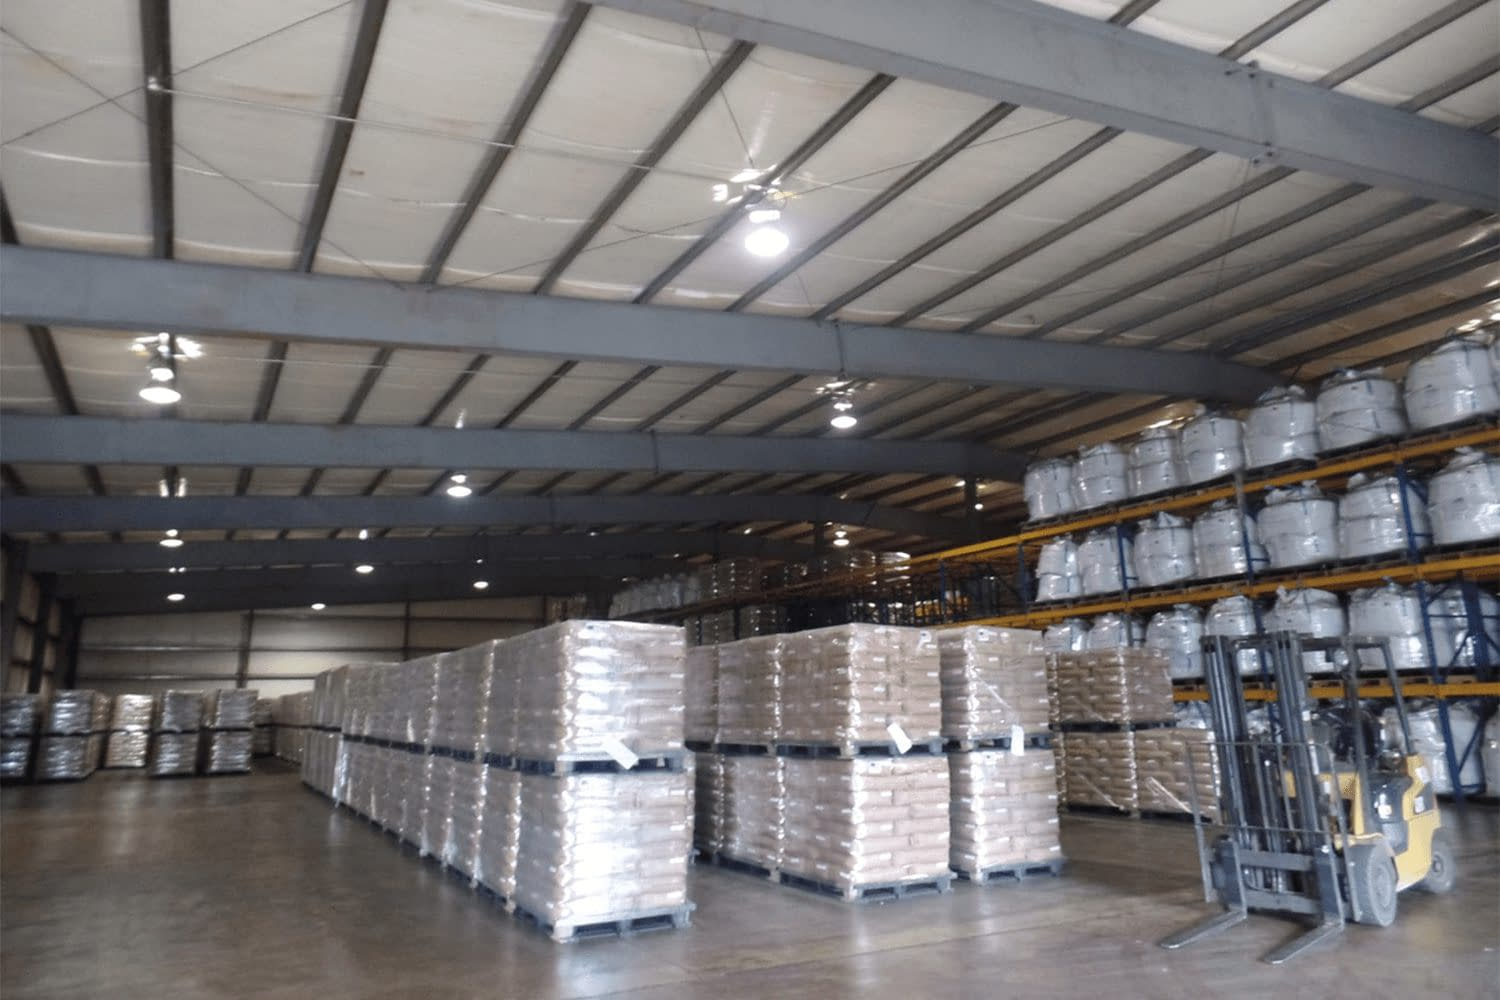 Interior of garage/storage building with palettes of packaged products